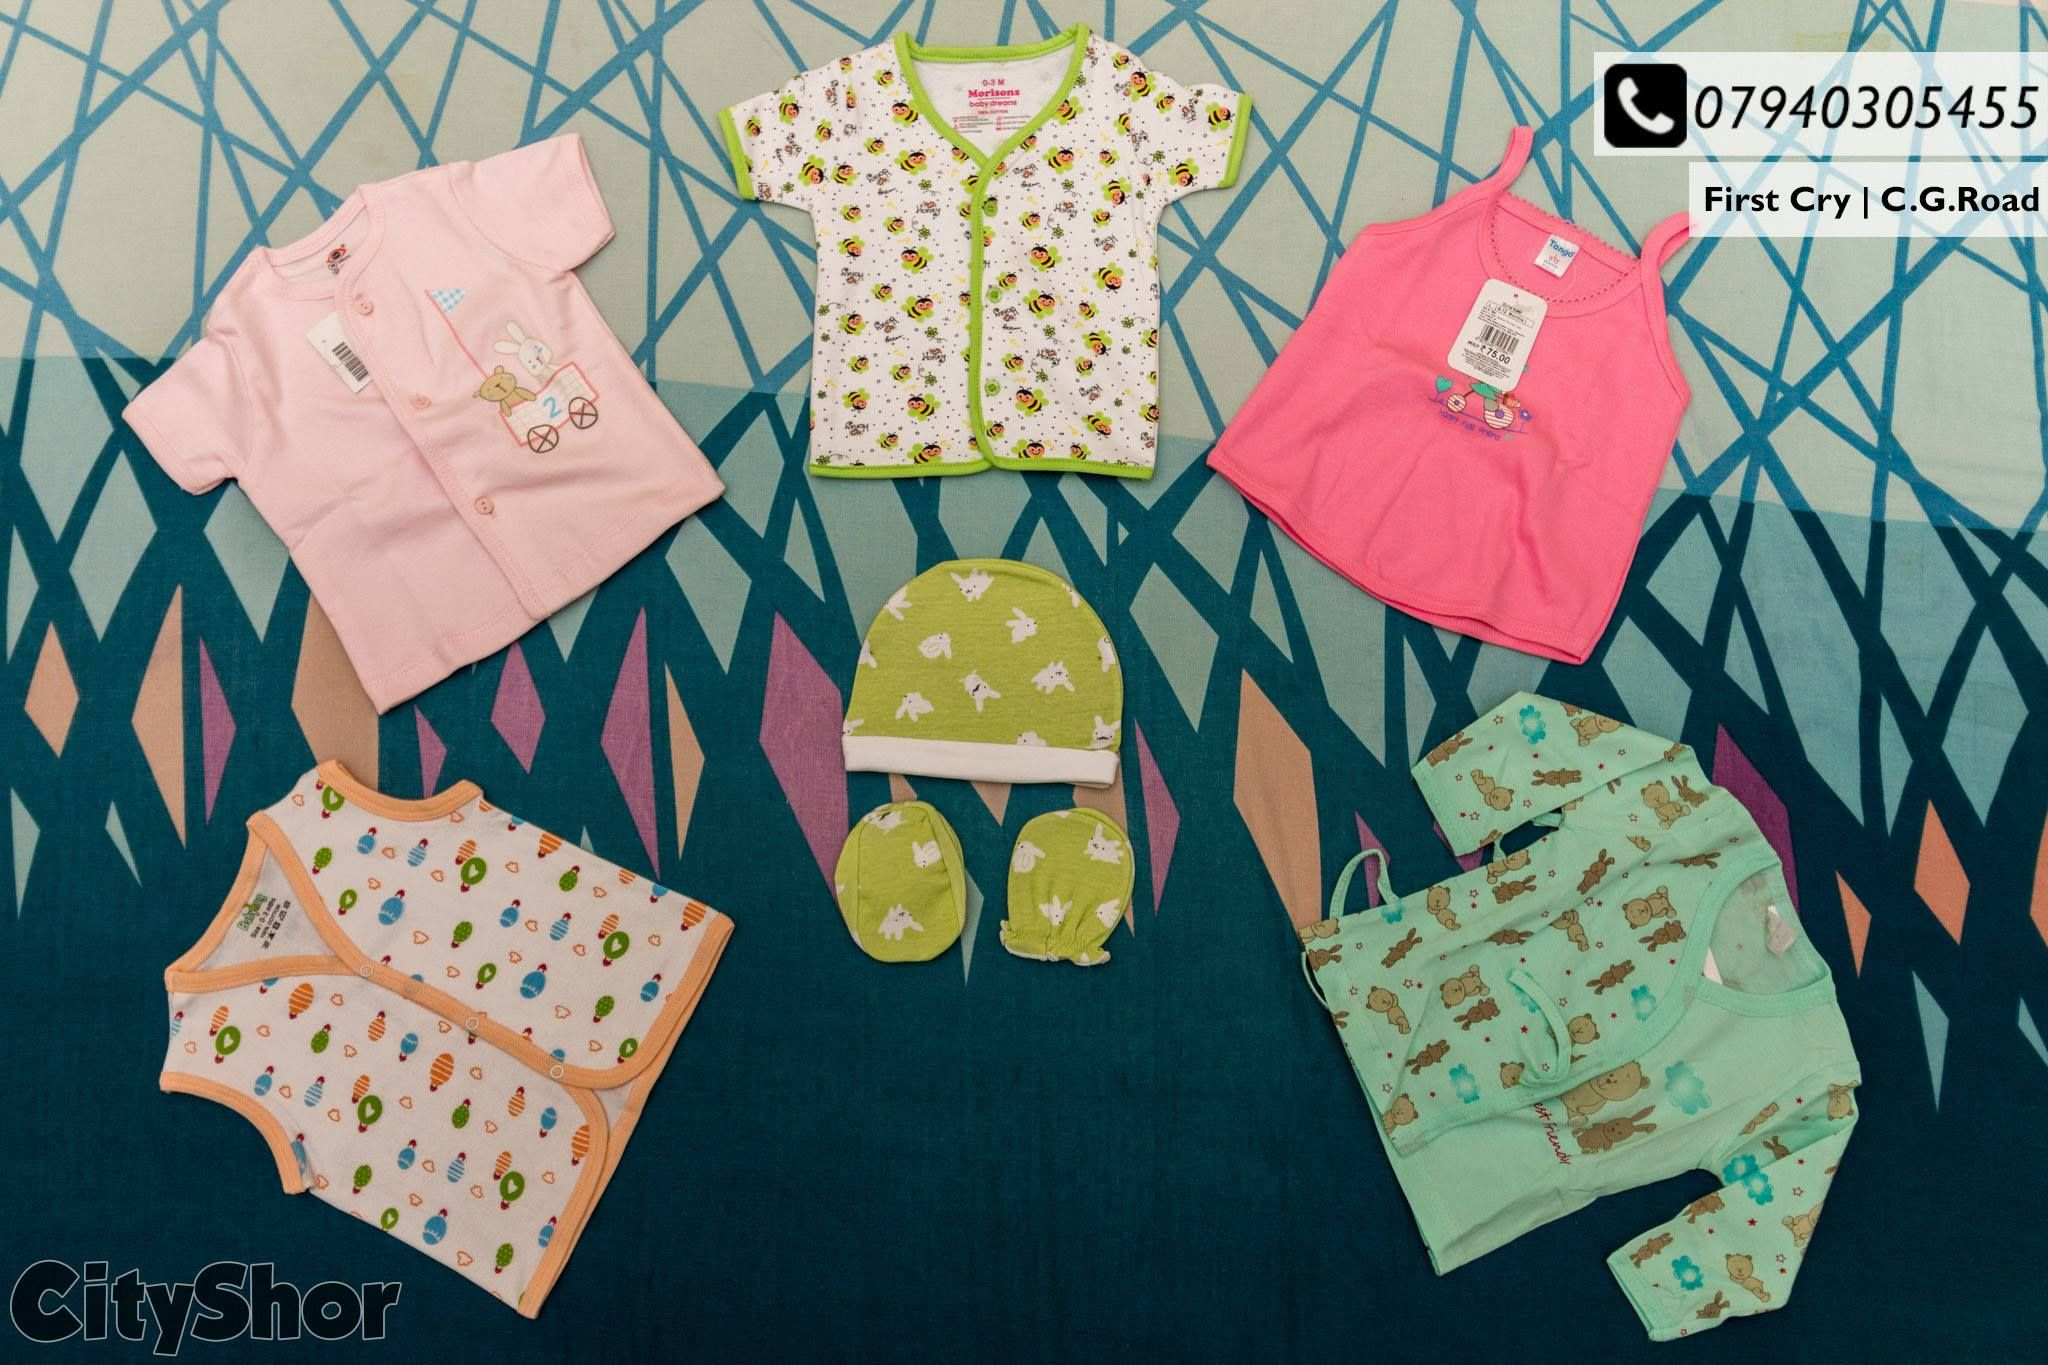 With over 400 national & international brands @ #FIRSTCRY. Address: firstcry.com, Agarwal Complex, Besides Municipal Market, CG Road. Contact - 079 4030 5455 #Fashion #KidsFashion #Toys #Furniture #FIRSTCRY #CityShorAhmedabad